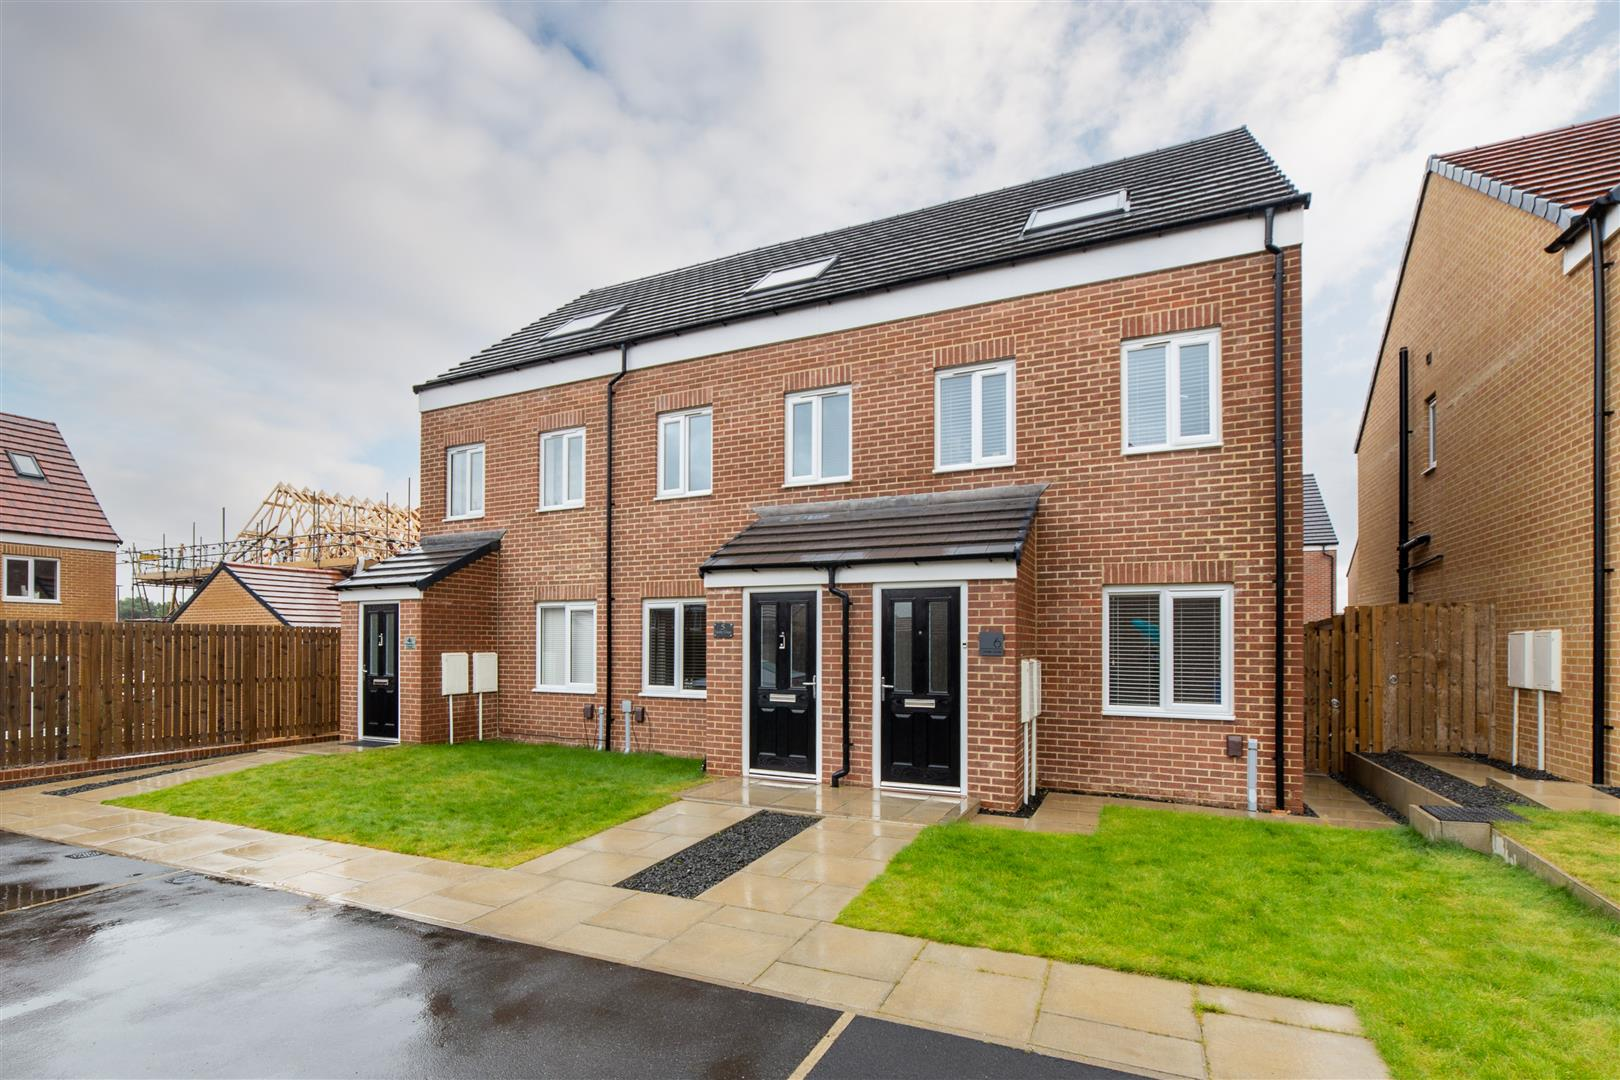 3 bed town house for sale in Oasby Close, Cramlington, NE23